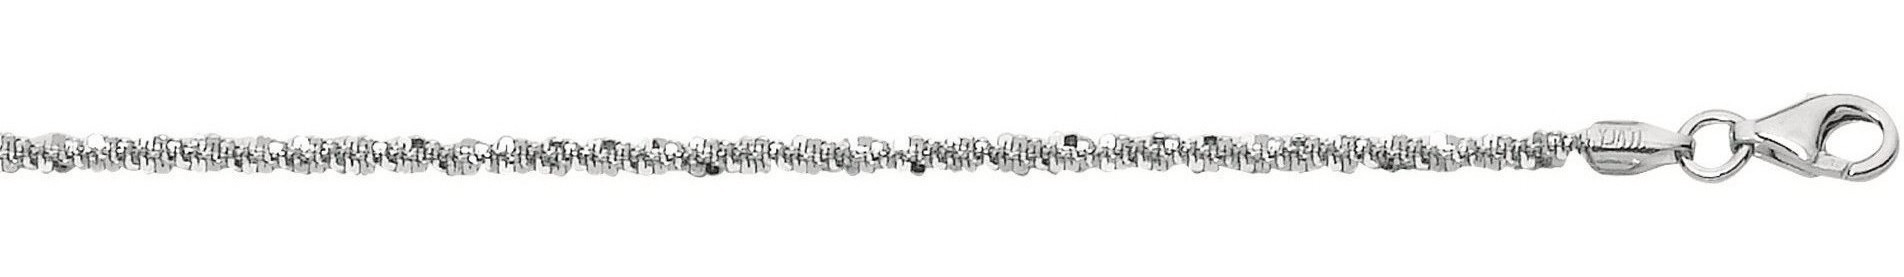 "16"" 2.2mm (0.09"") Rhodium Plated Polished Diamond Cut 925 Sterling Silver Sparkle Chain w/ Pear Shape Clasp"